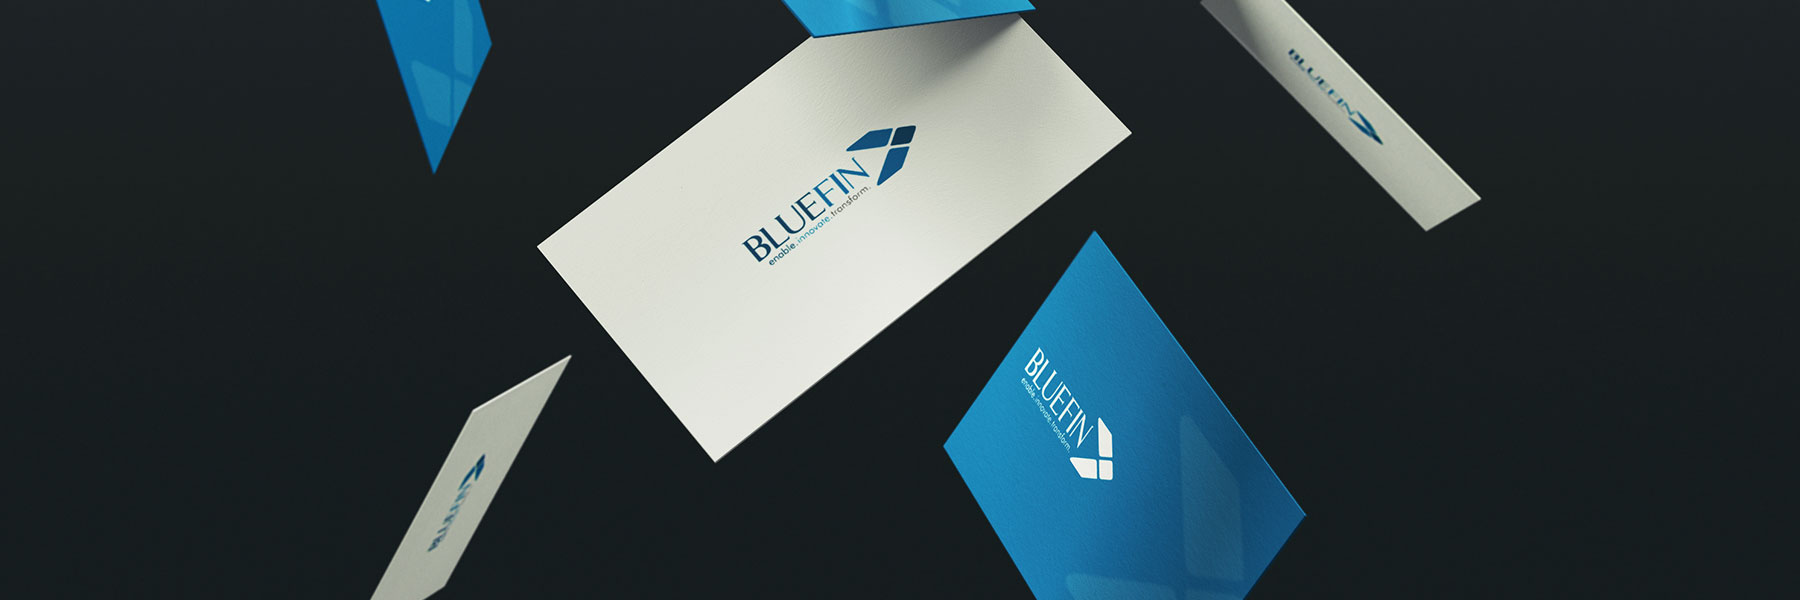 Bluefin Tech